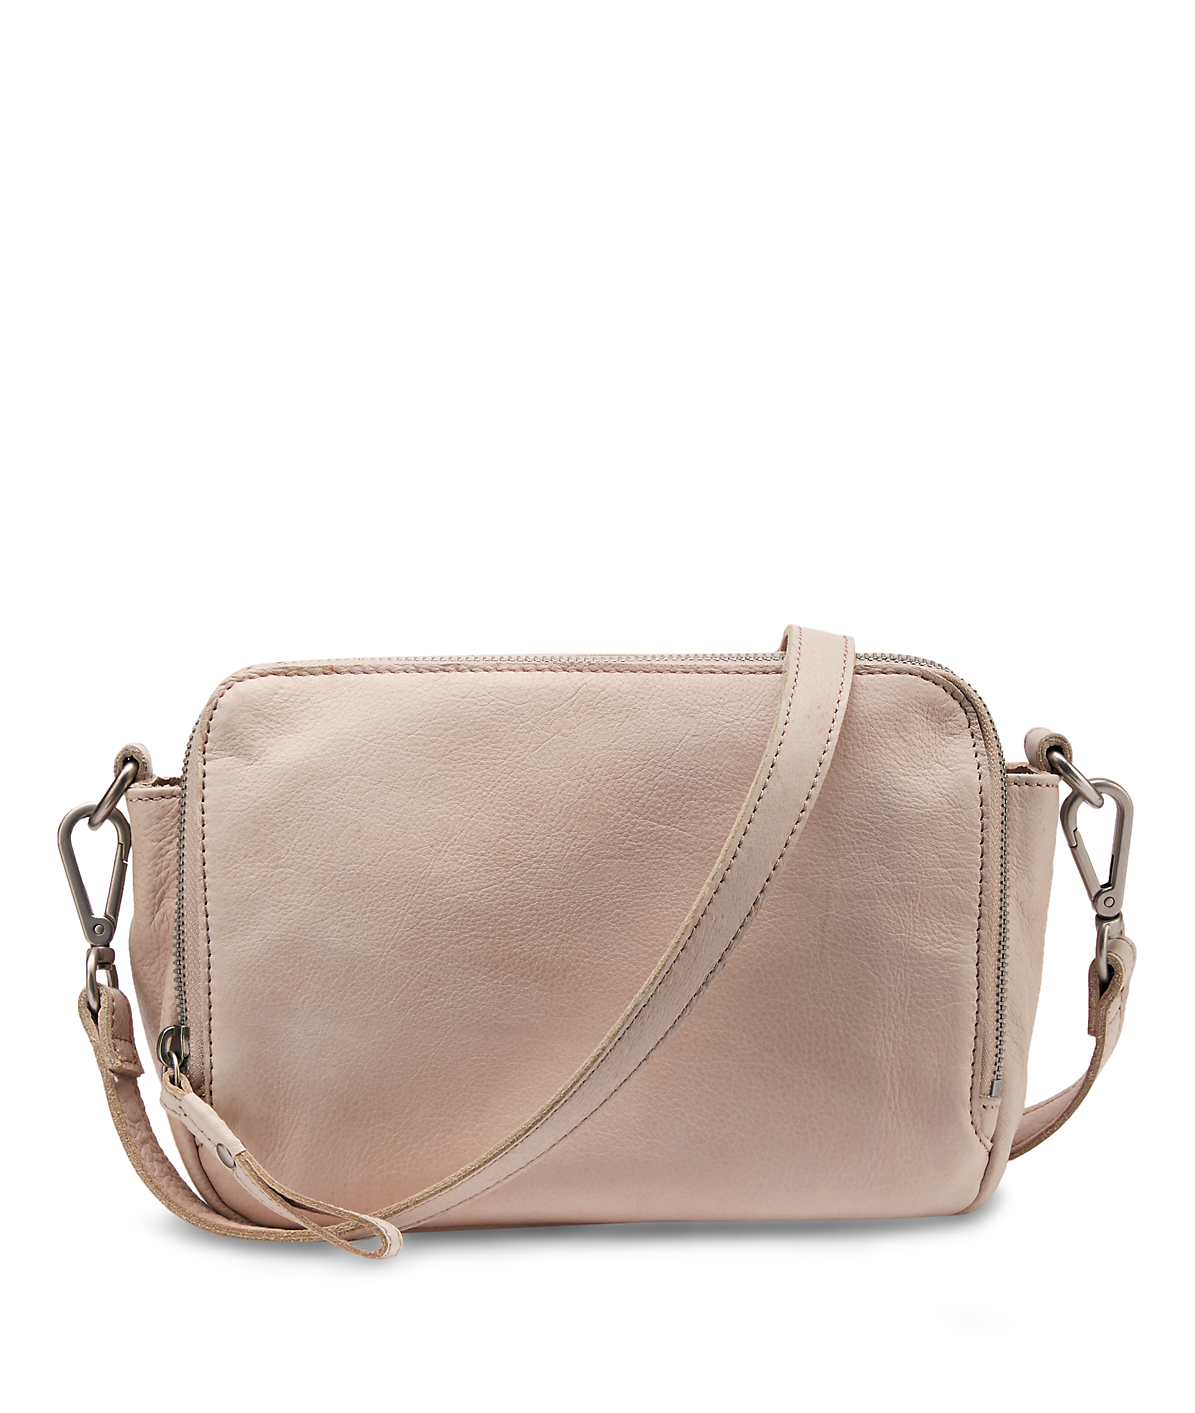 Anett cross-body bag from liebeskind